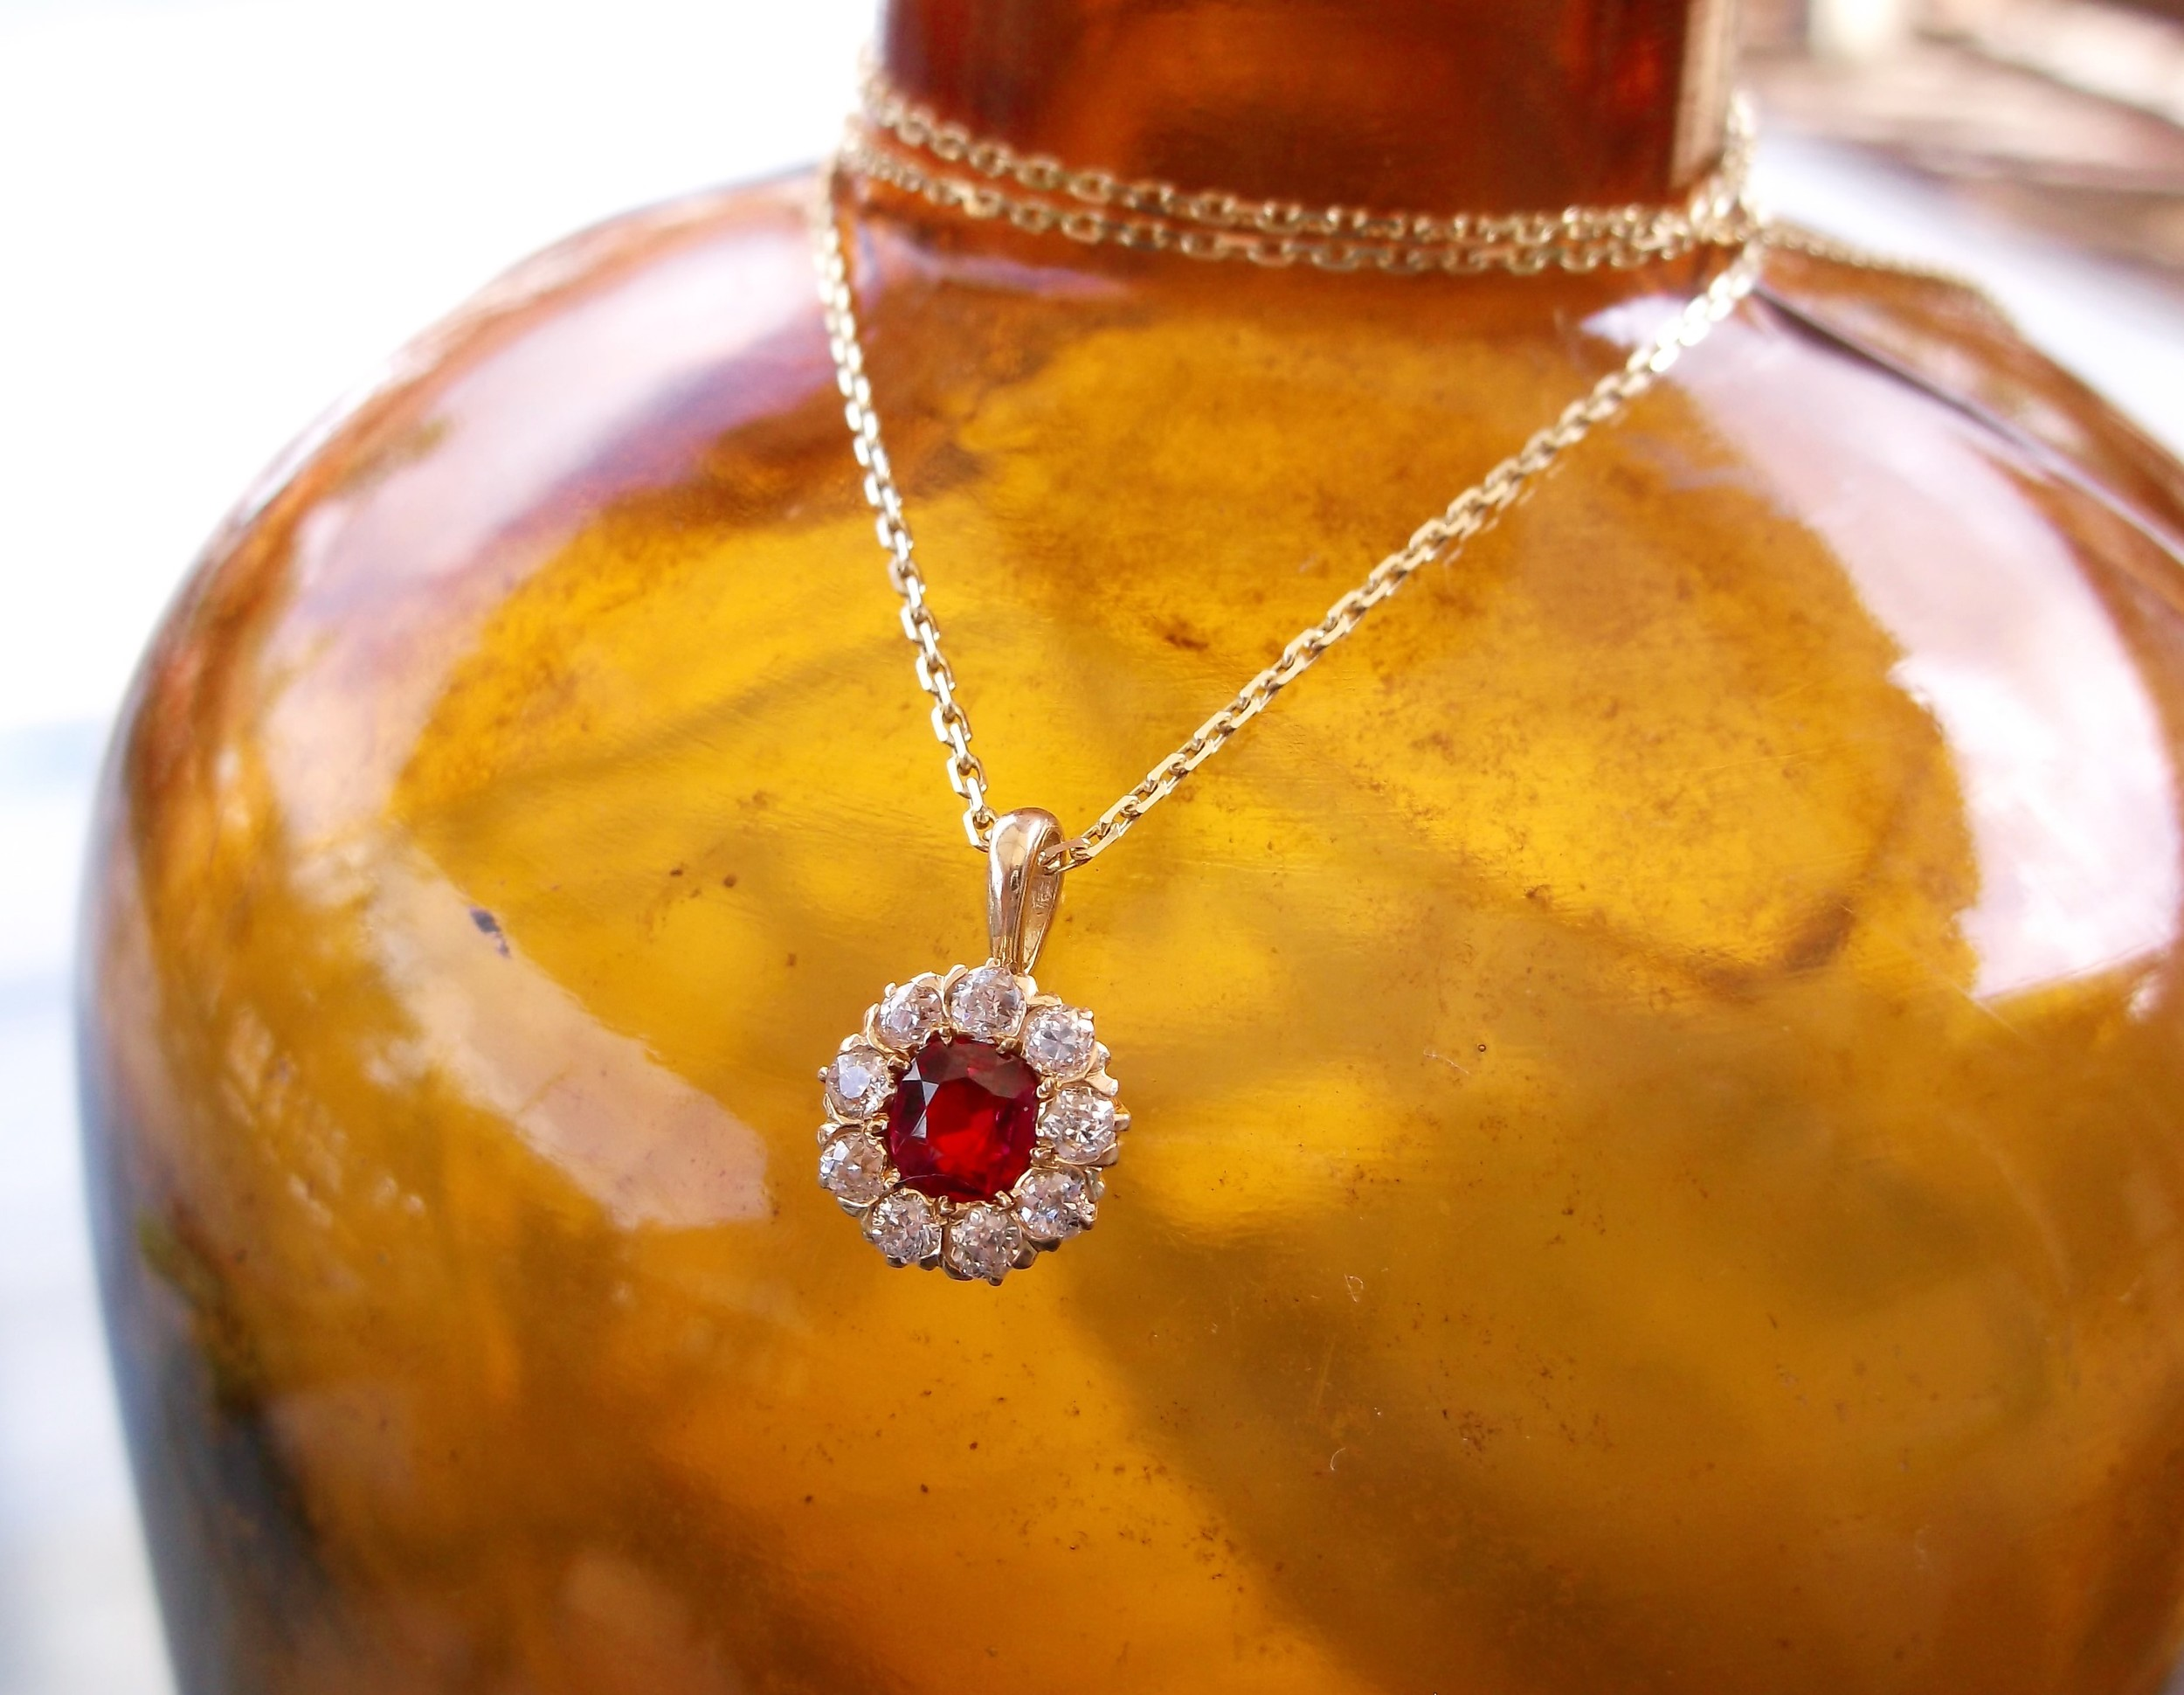 SOLD - Captivating Victorian era ruby, diamond and yellow gold pendant.